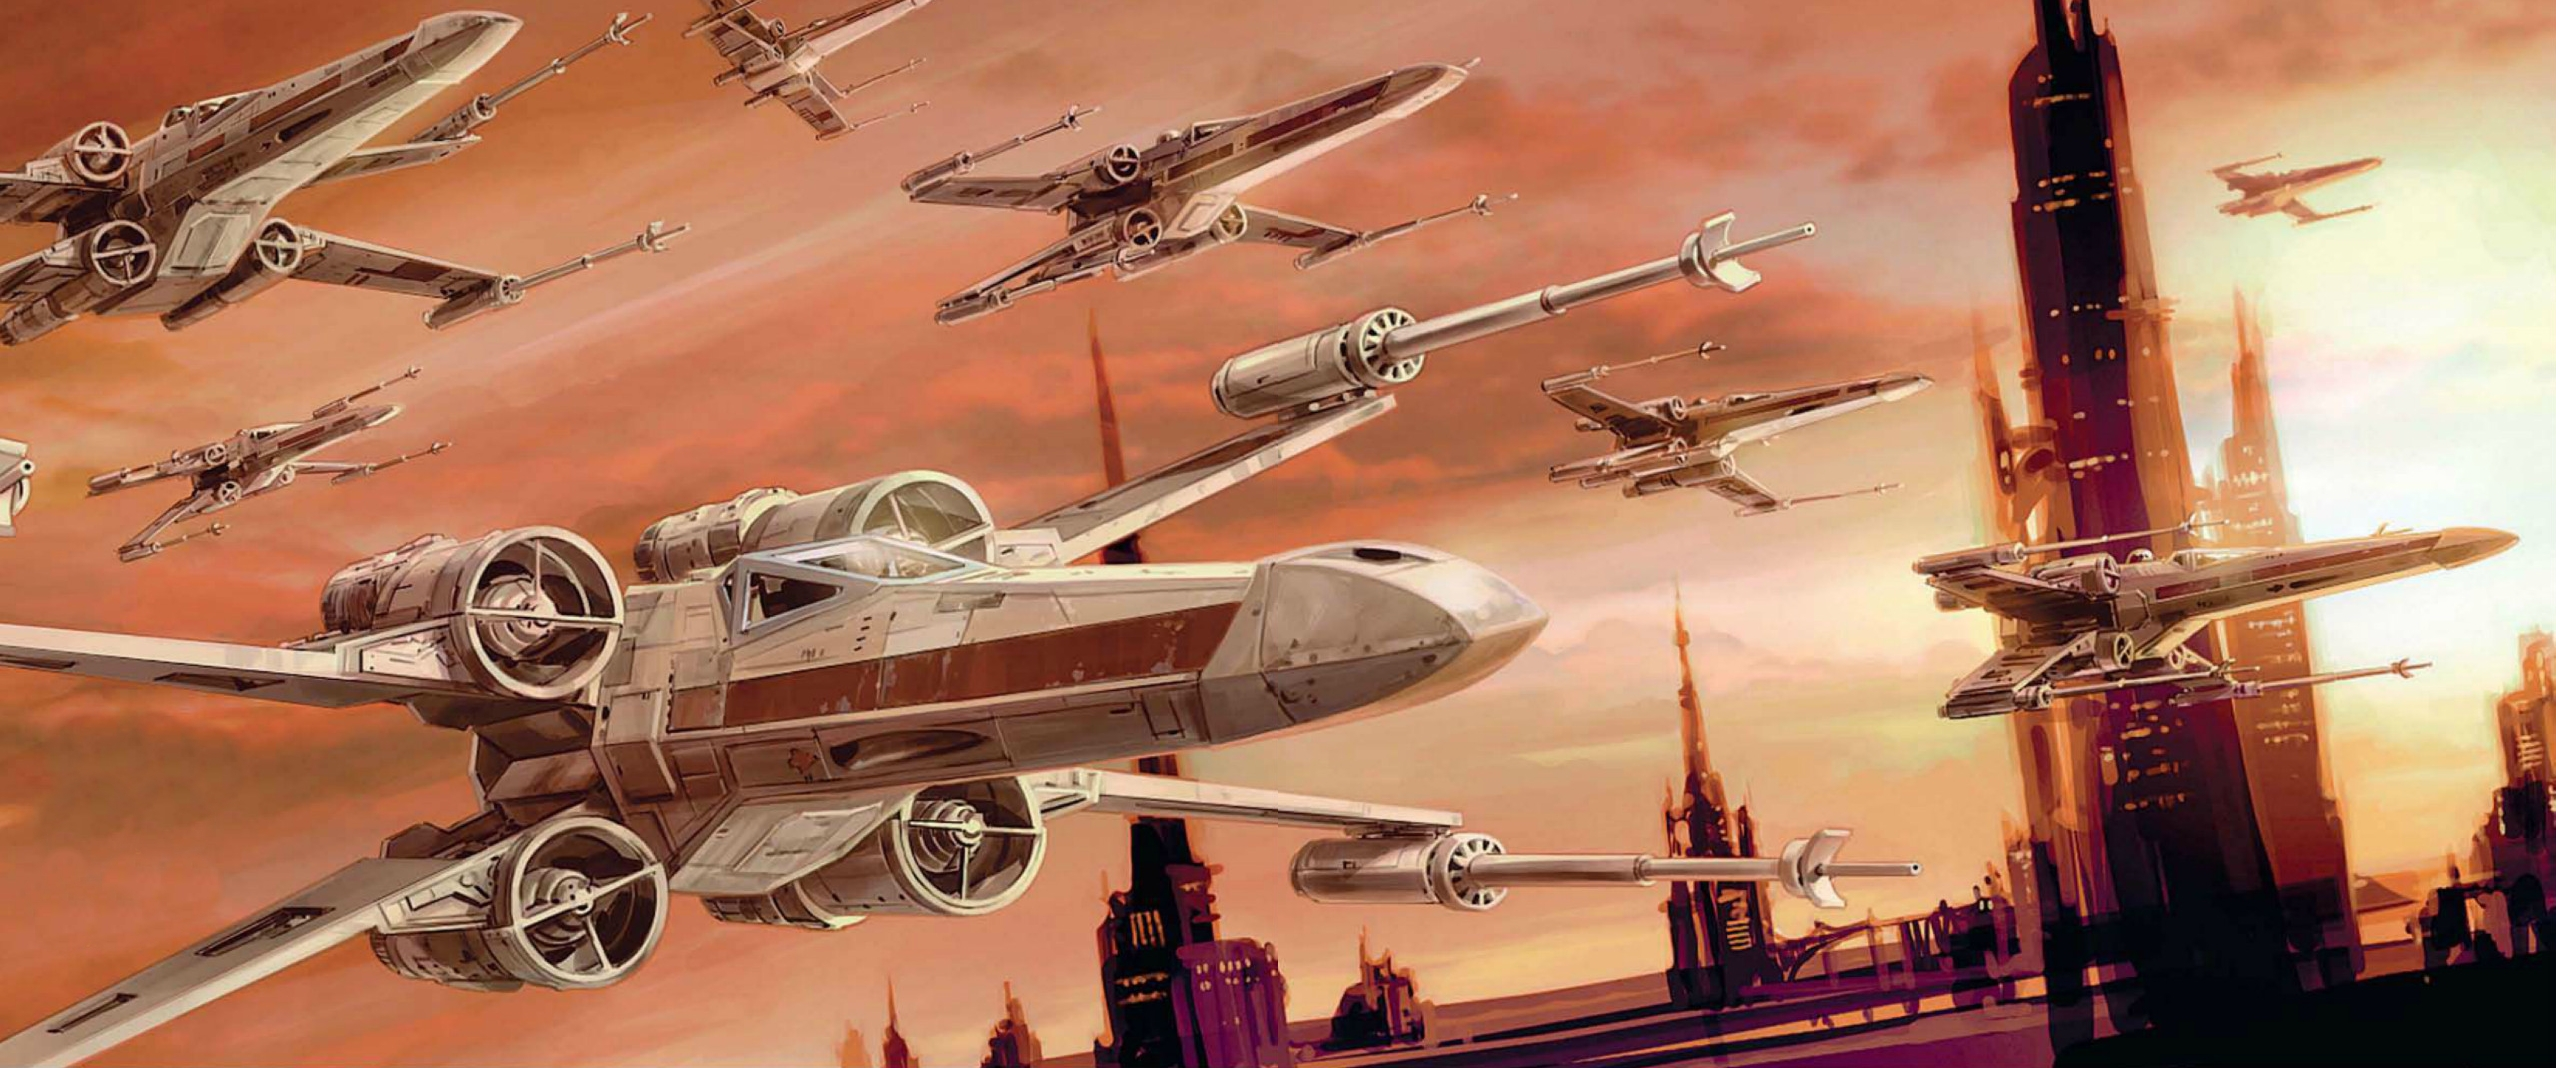 The might of Rogue Squadron